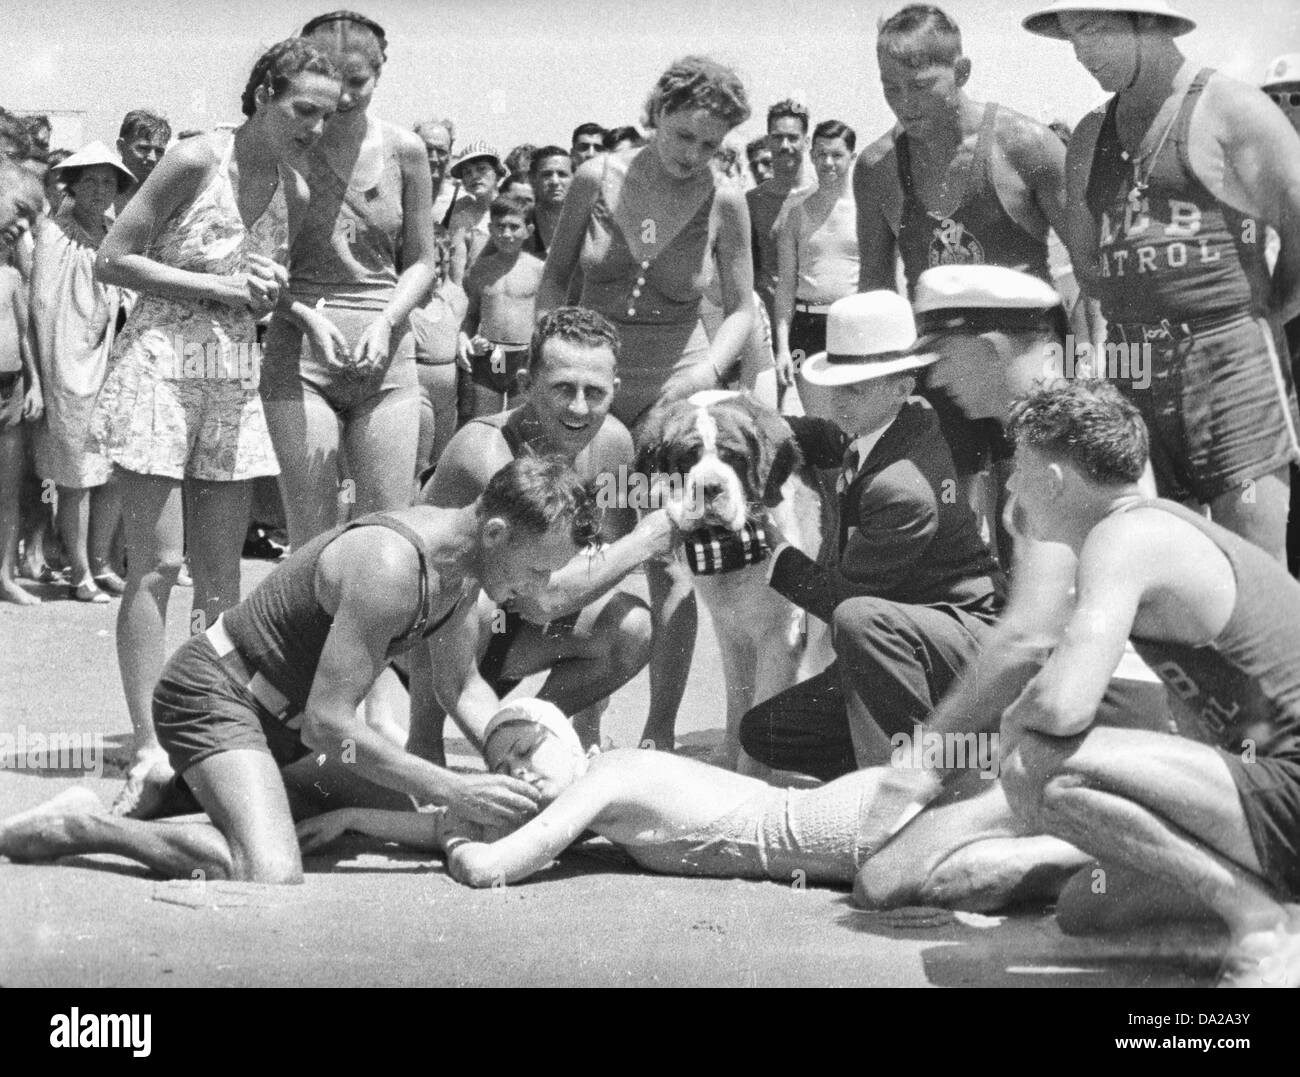 A St. Bernard 'rescuing' a passed out bather on the beach in Atlantic City, NJ circa 1935 - Stock Image